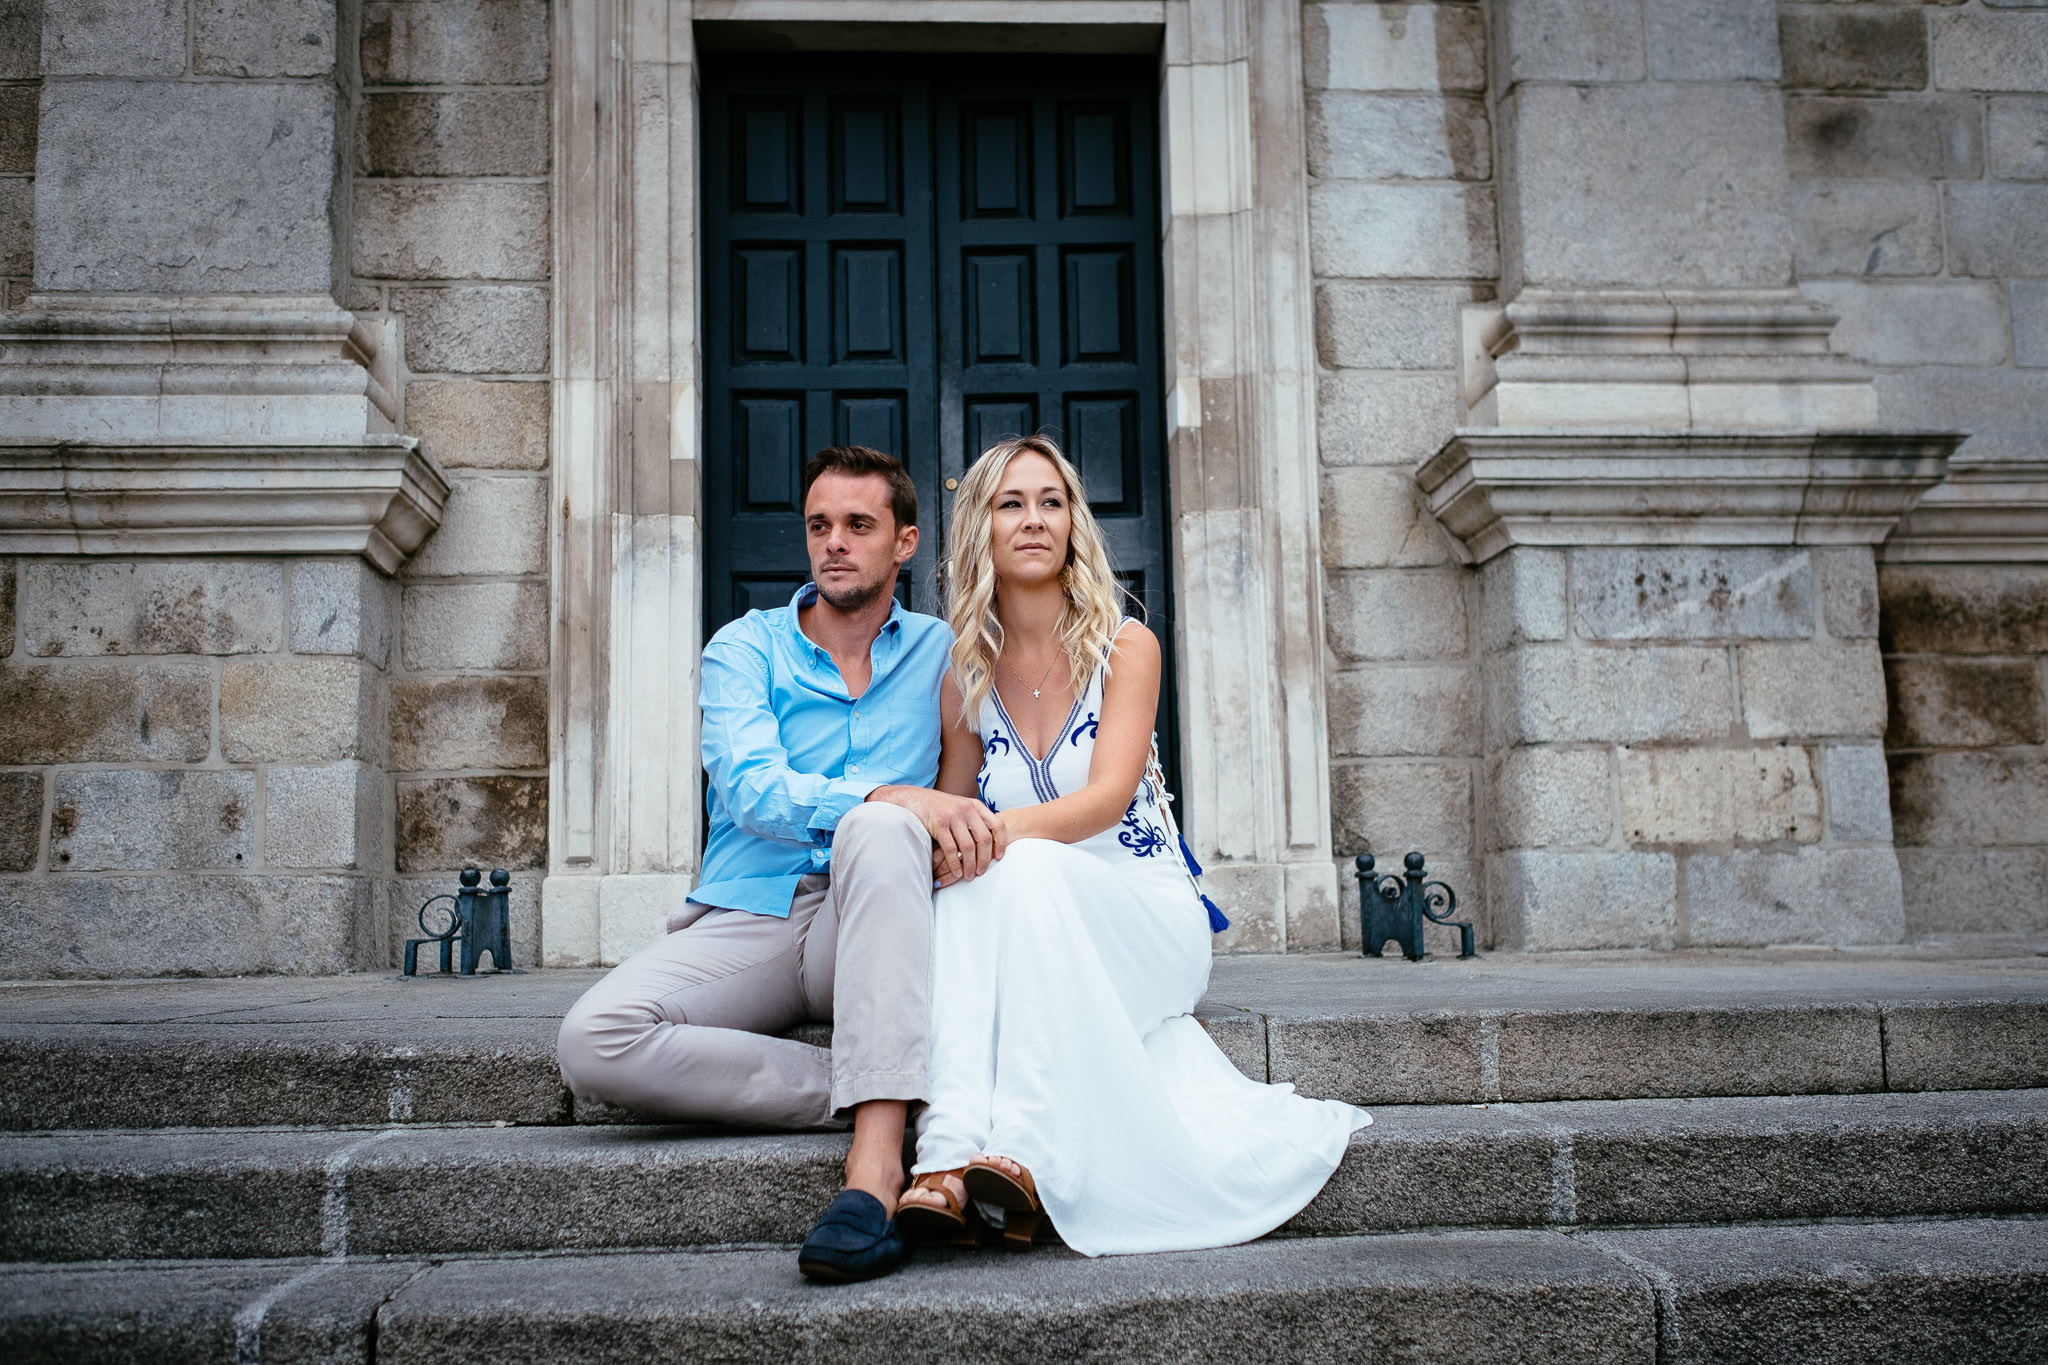 engaged US couple sitting on steps during their engagement photo session in Trinity College Dublin Ireland